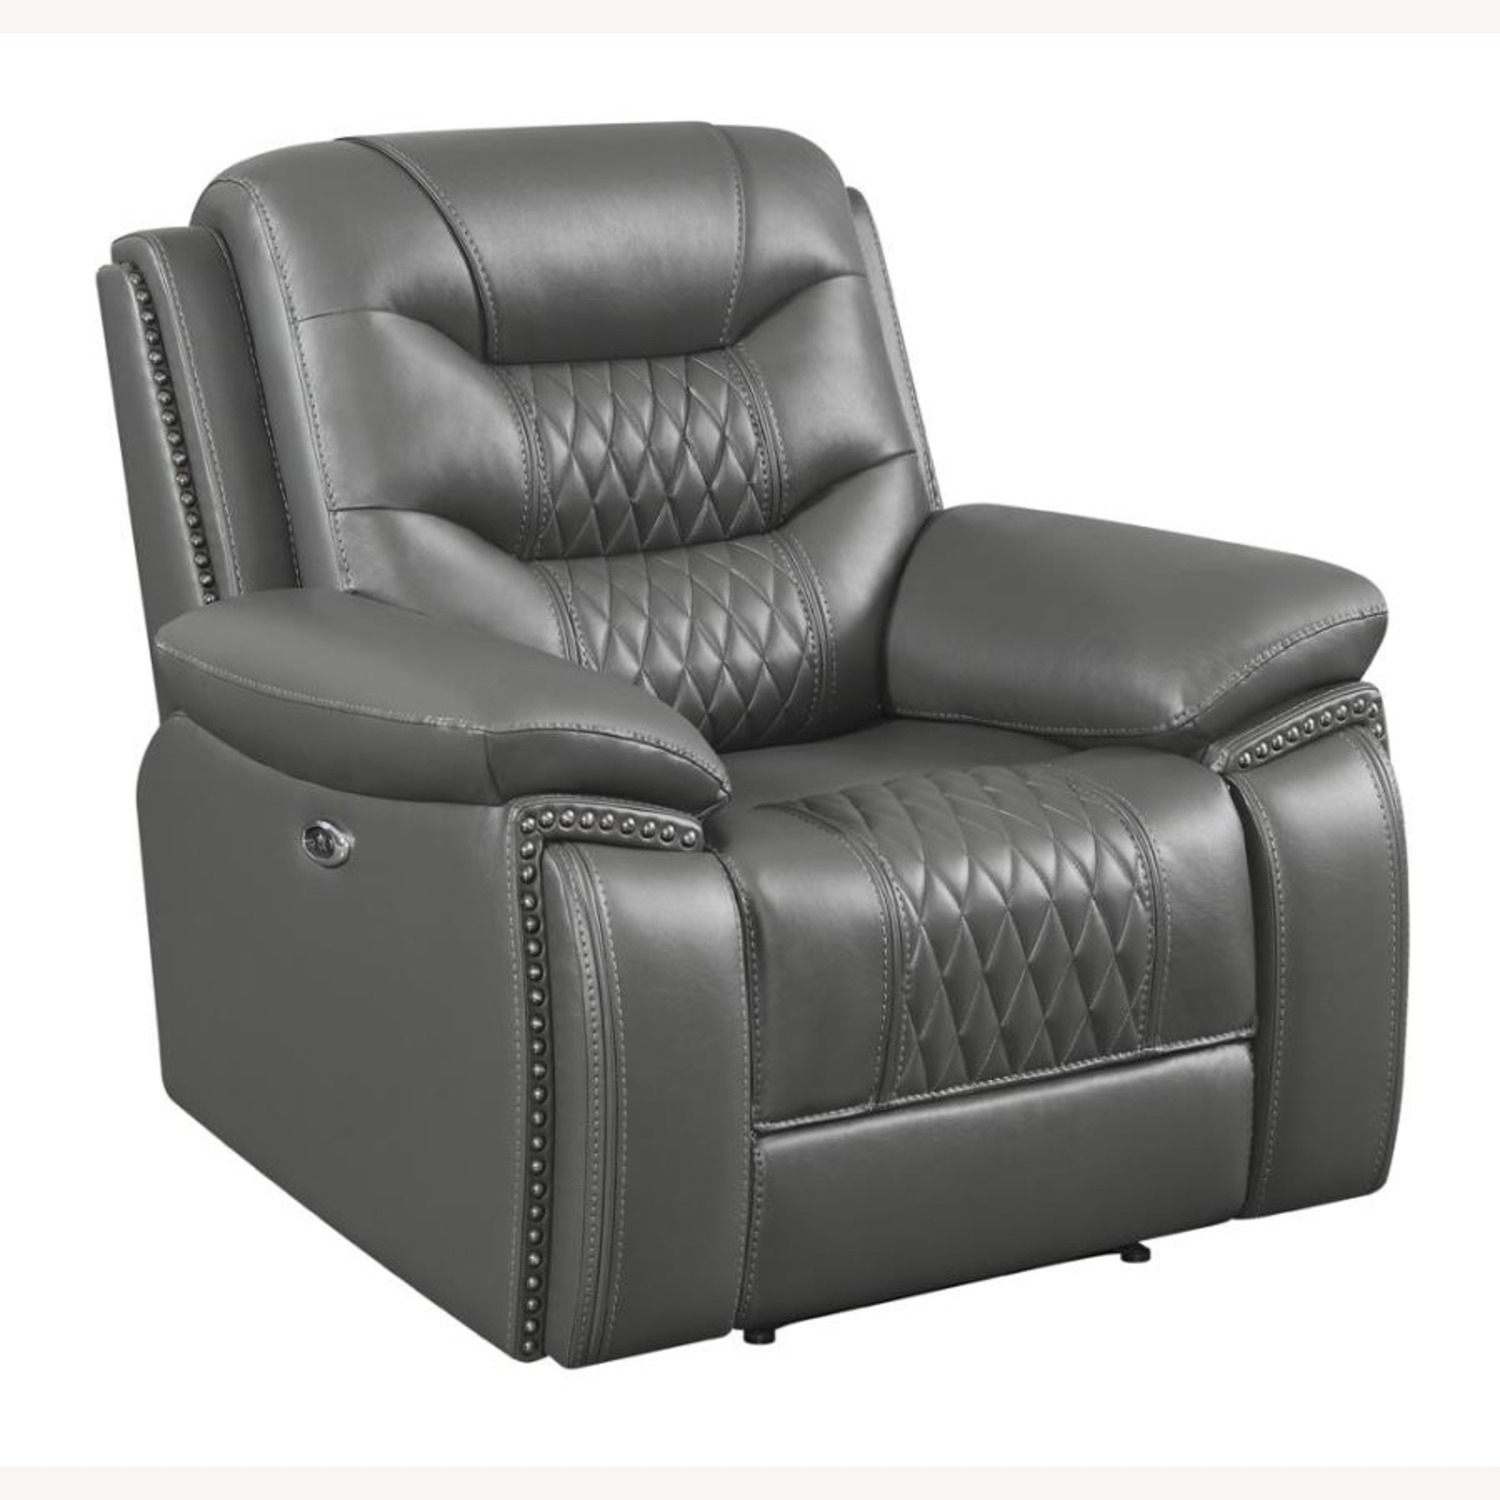 Power Recliner In Charcoal Performance Leatherette - image-0